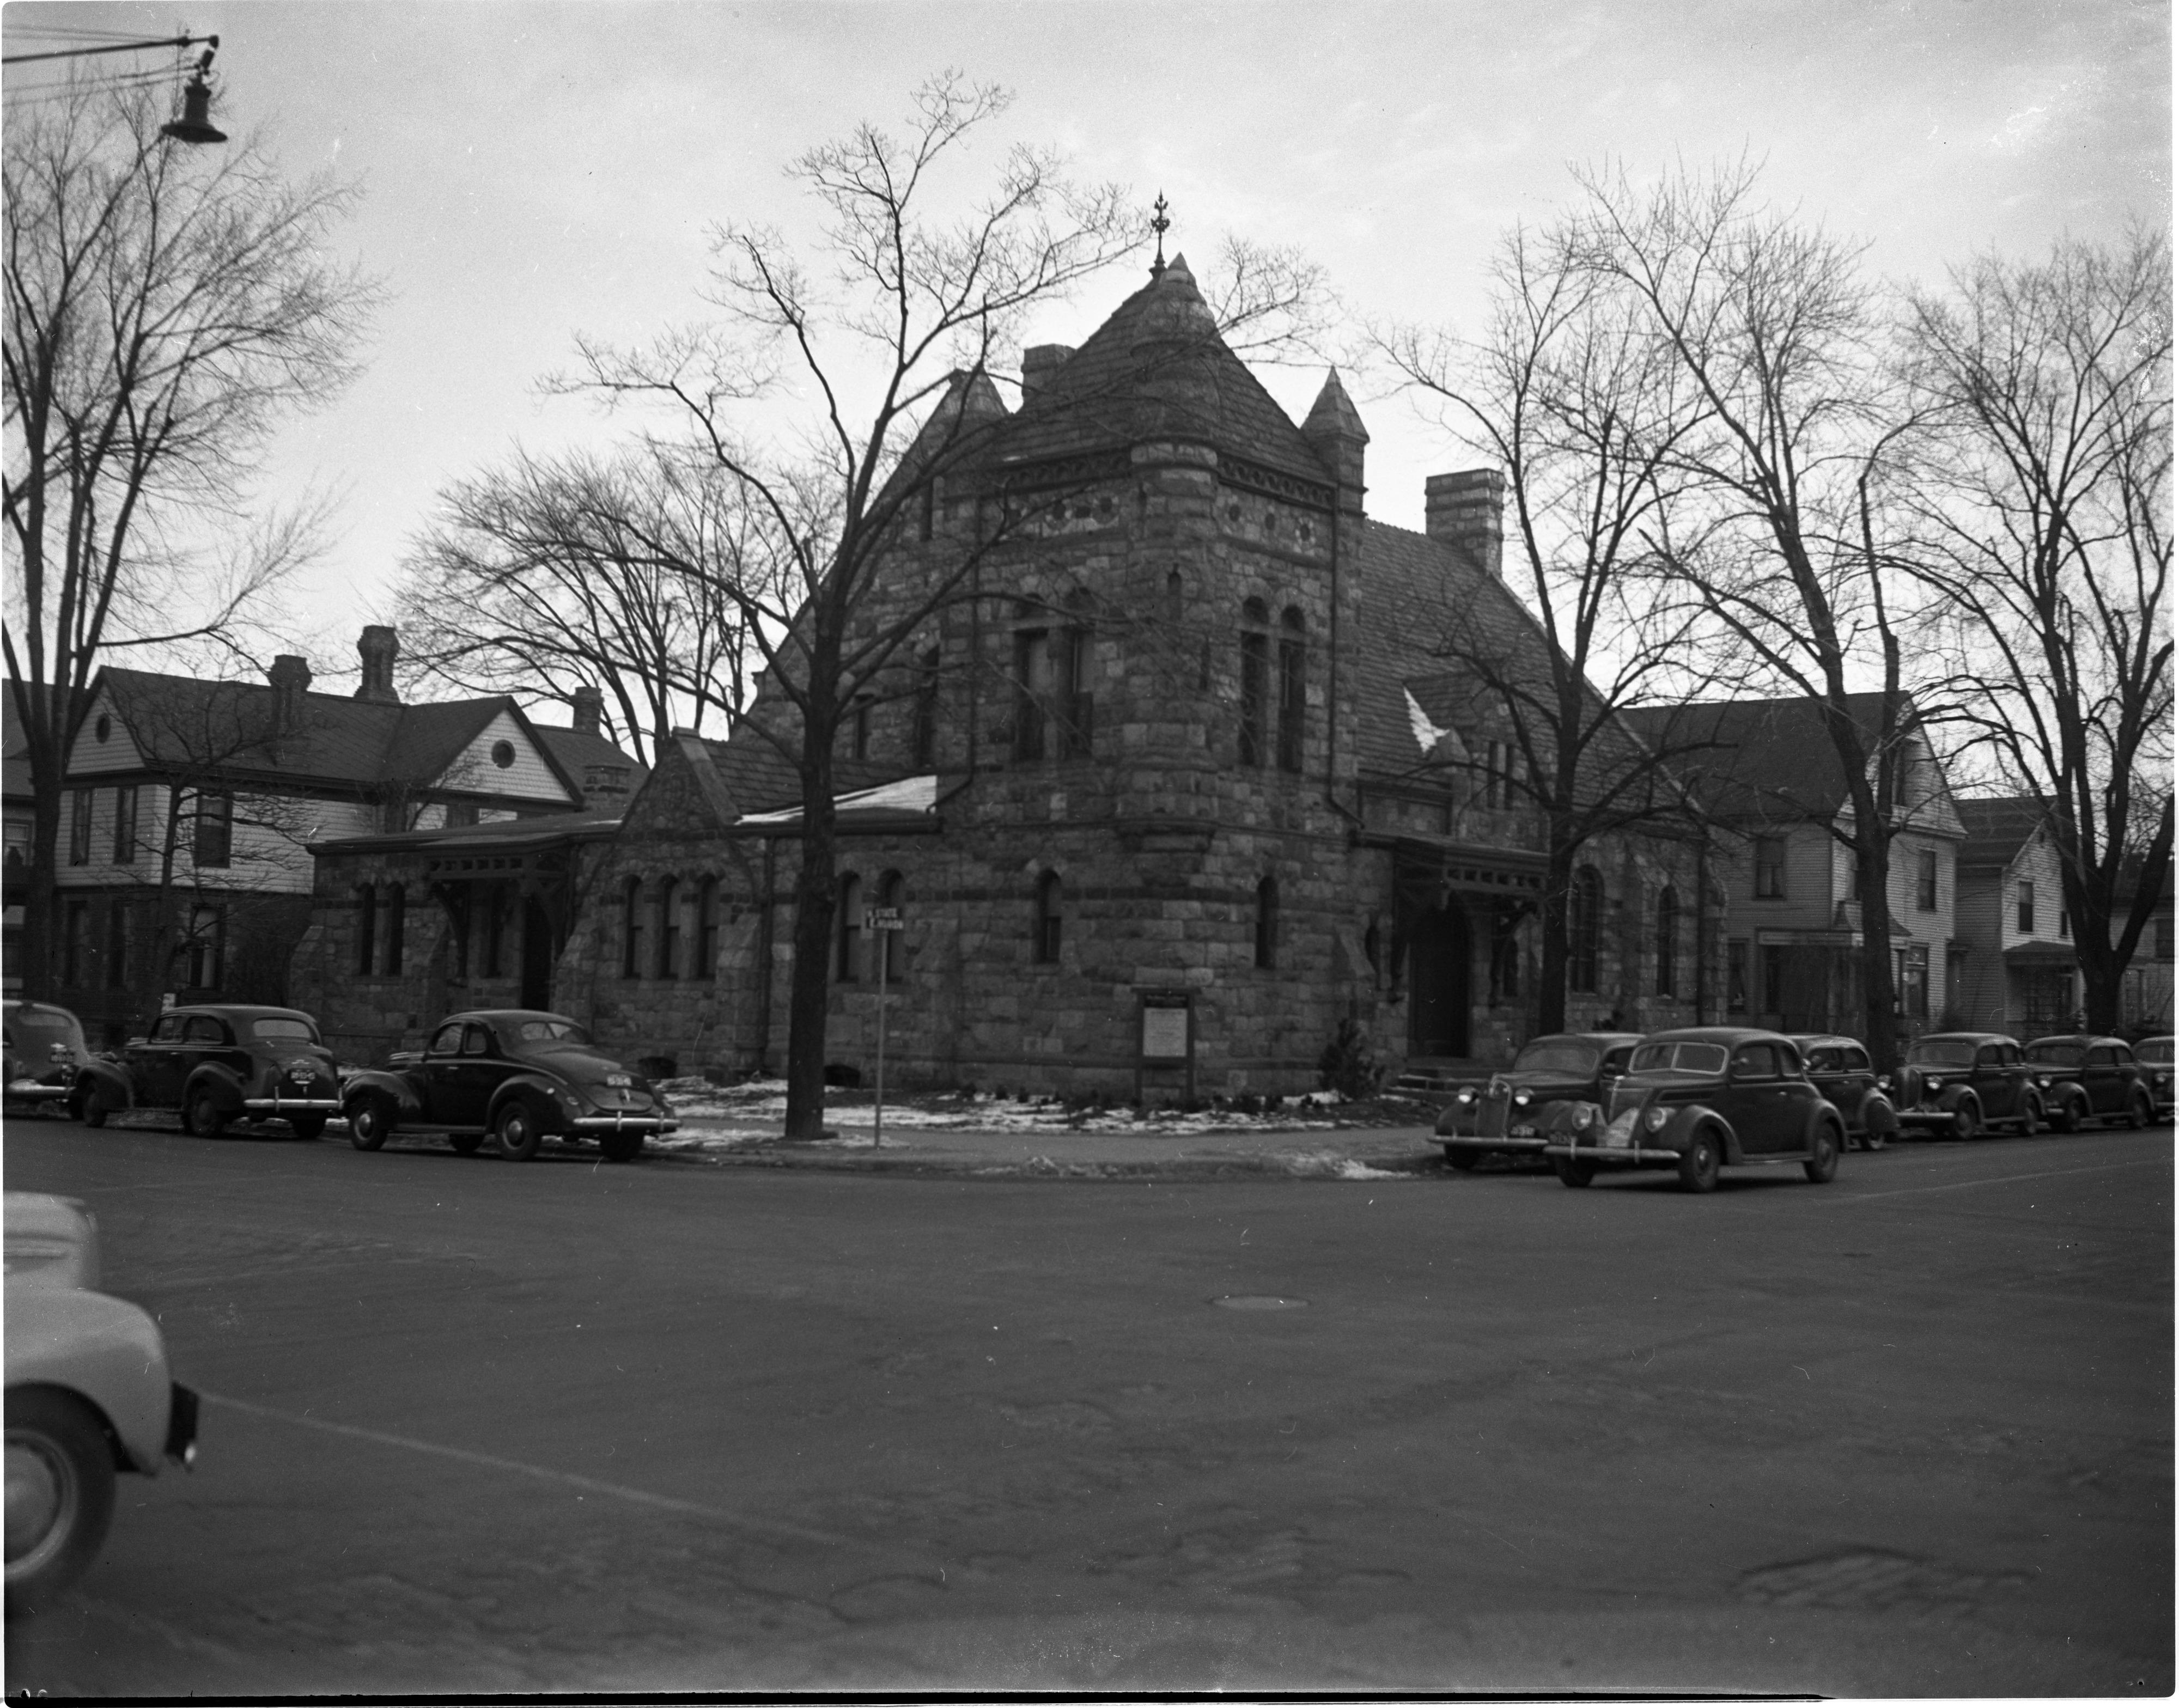 First Unitarian Church, 100 N State Street, January 1942 image